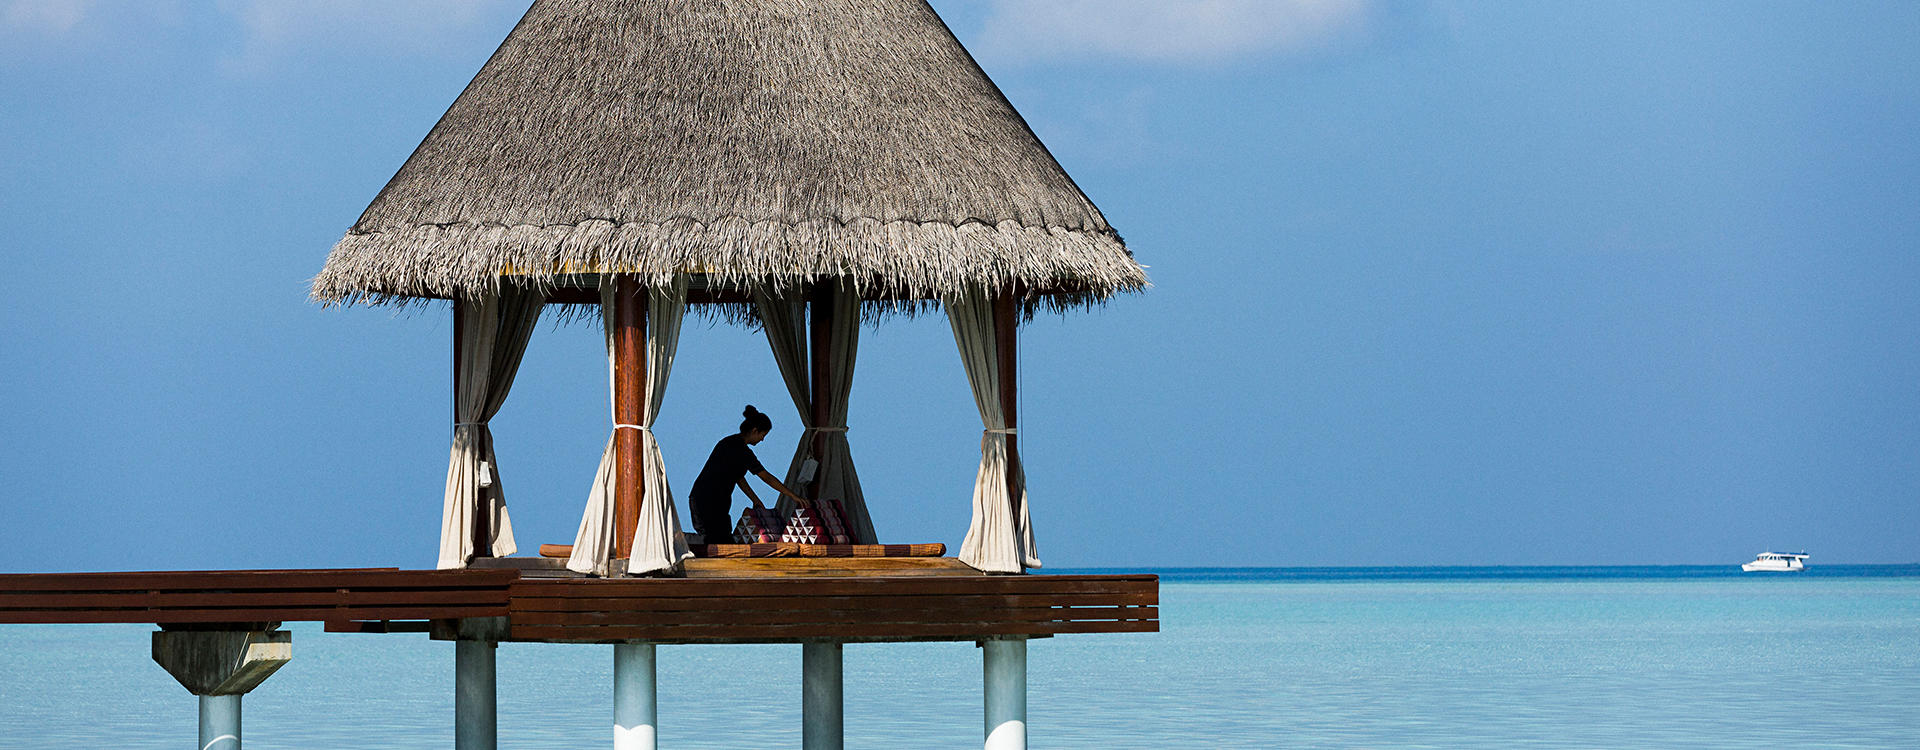 EIN Dhigu Maldives_Signature Massage